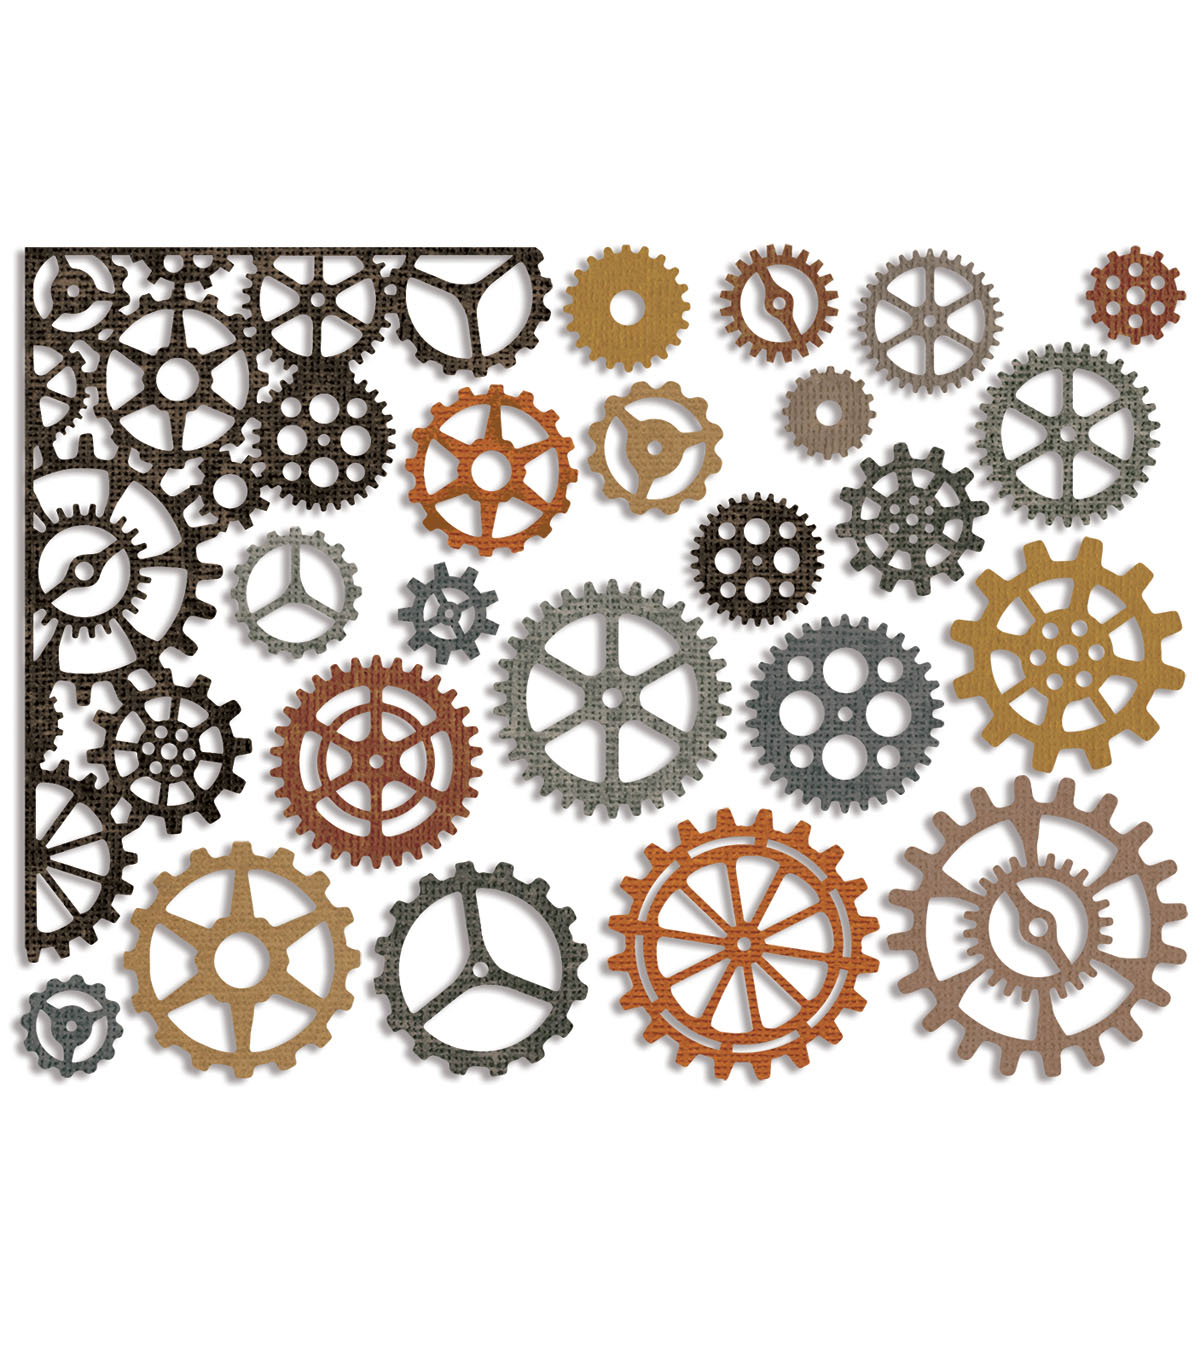 Sizzix Thinlits Tim Holtz Alterations 22 pk Dies-Gearhead